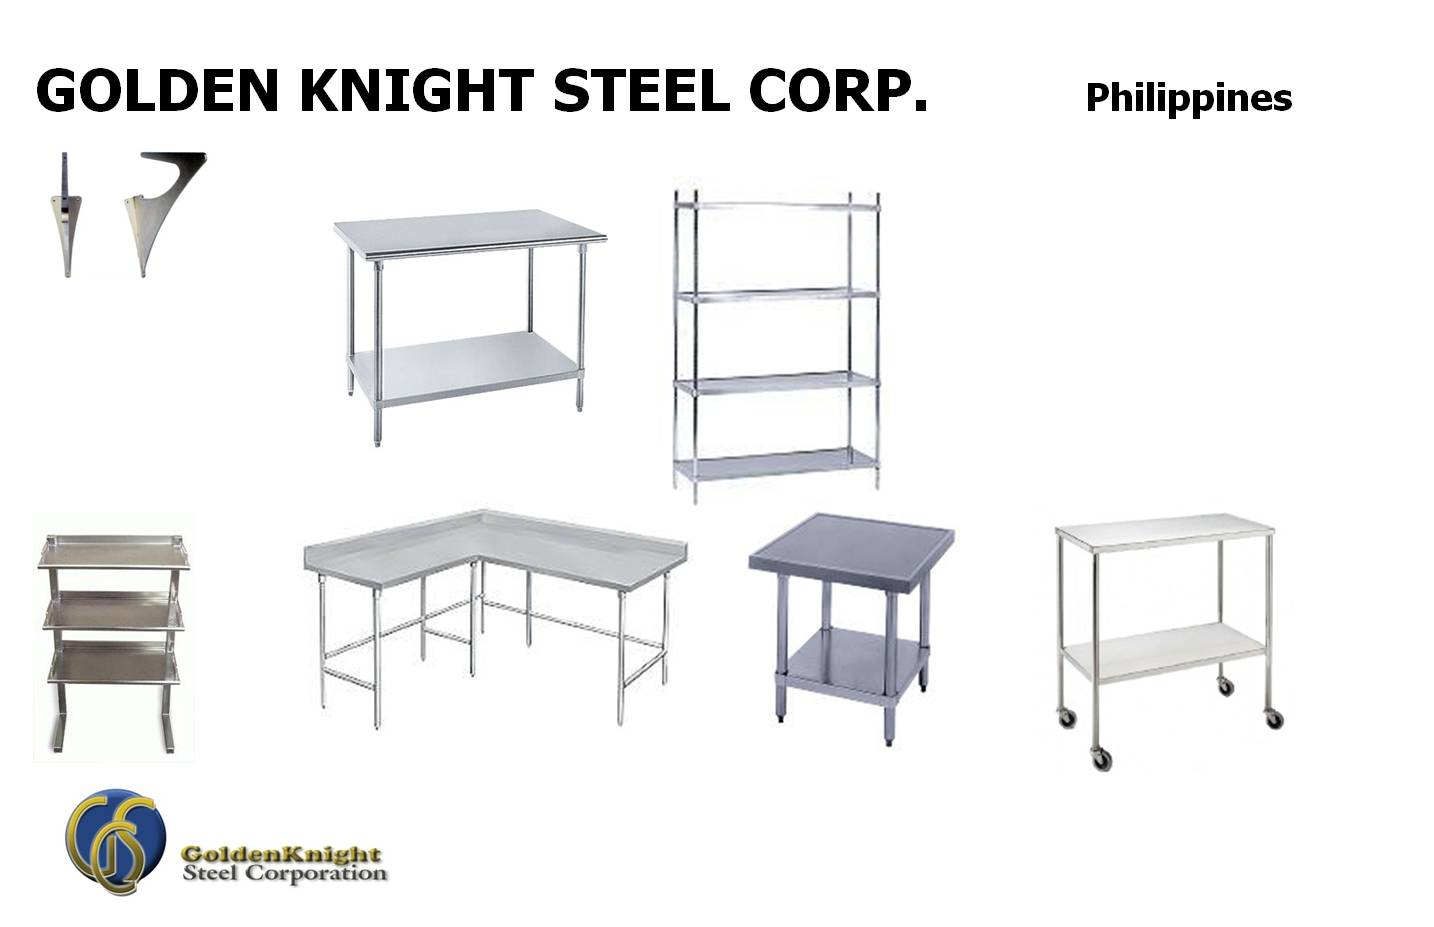 Telesemi Corporation - Goldenknight Steel